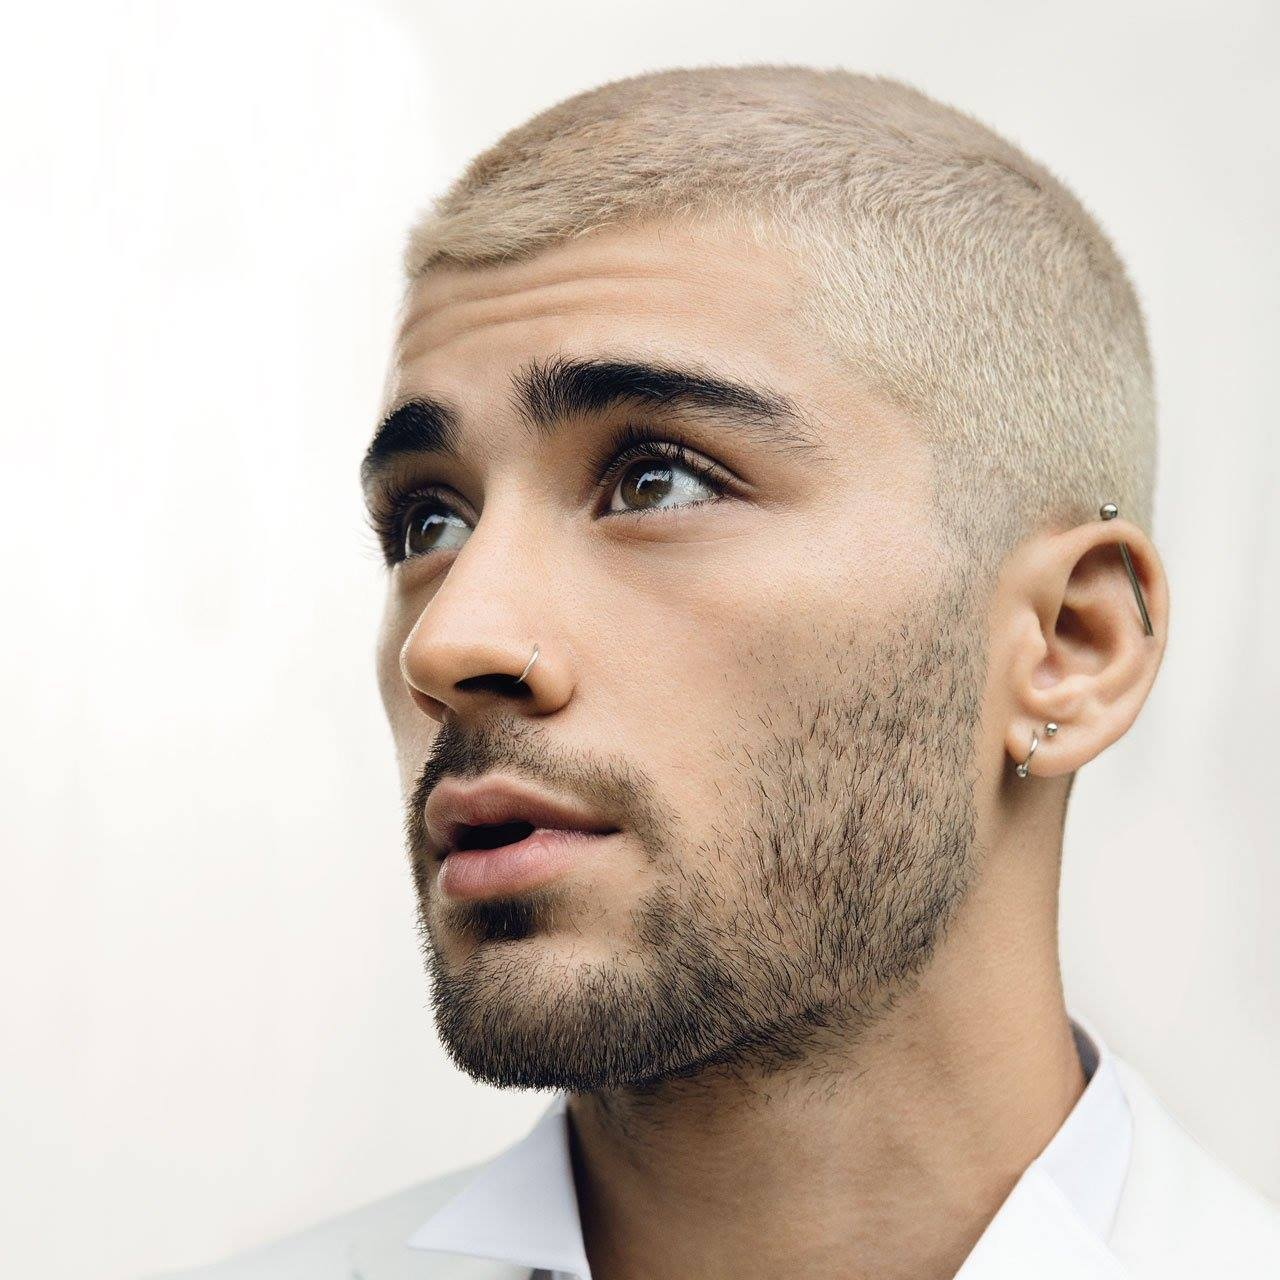 zayn malik haircut latest updated - men's hairstyle swag